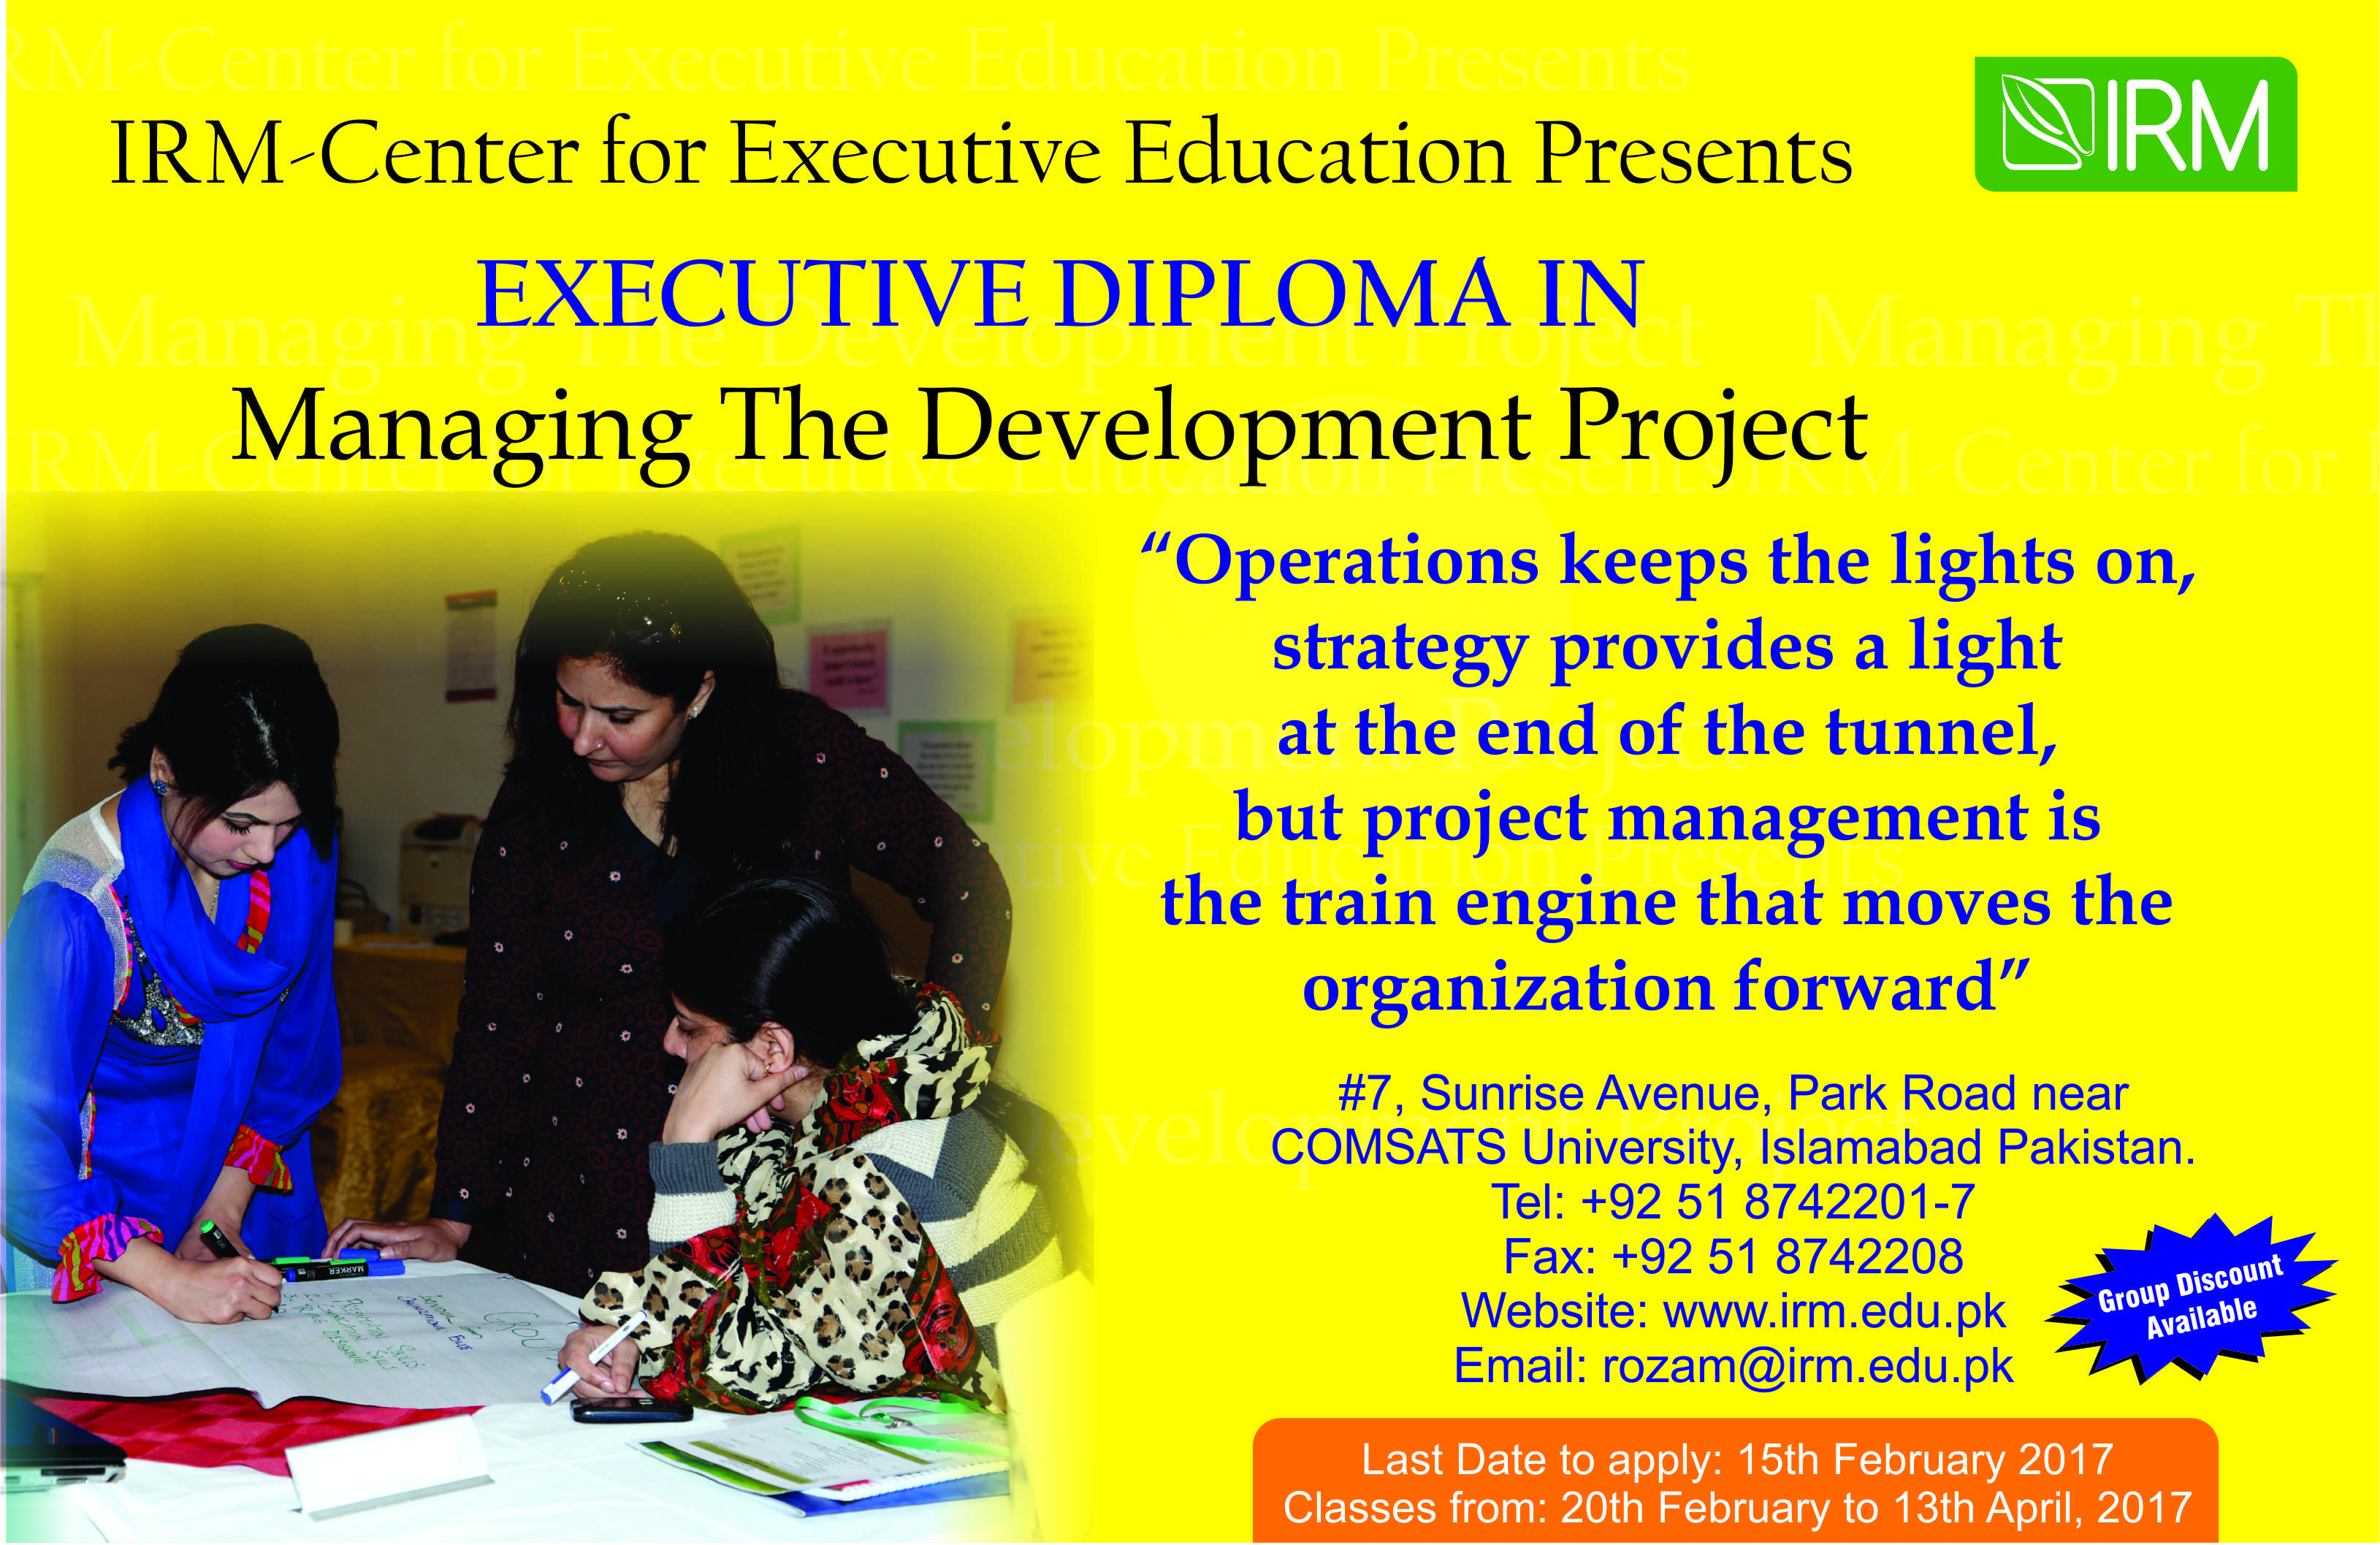 Executive Diploma in Managing The Development Project